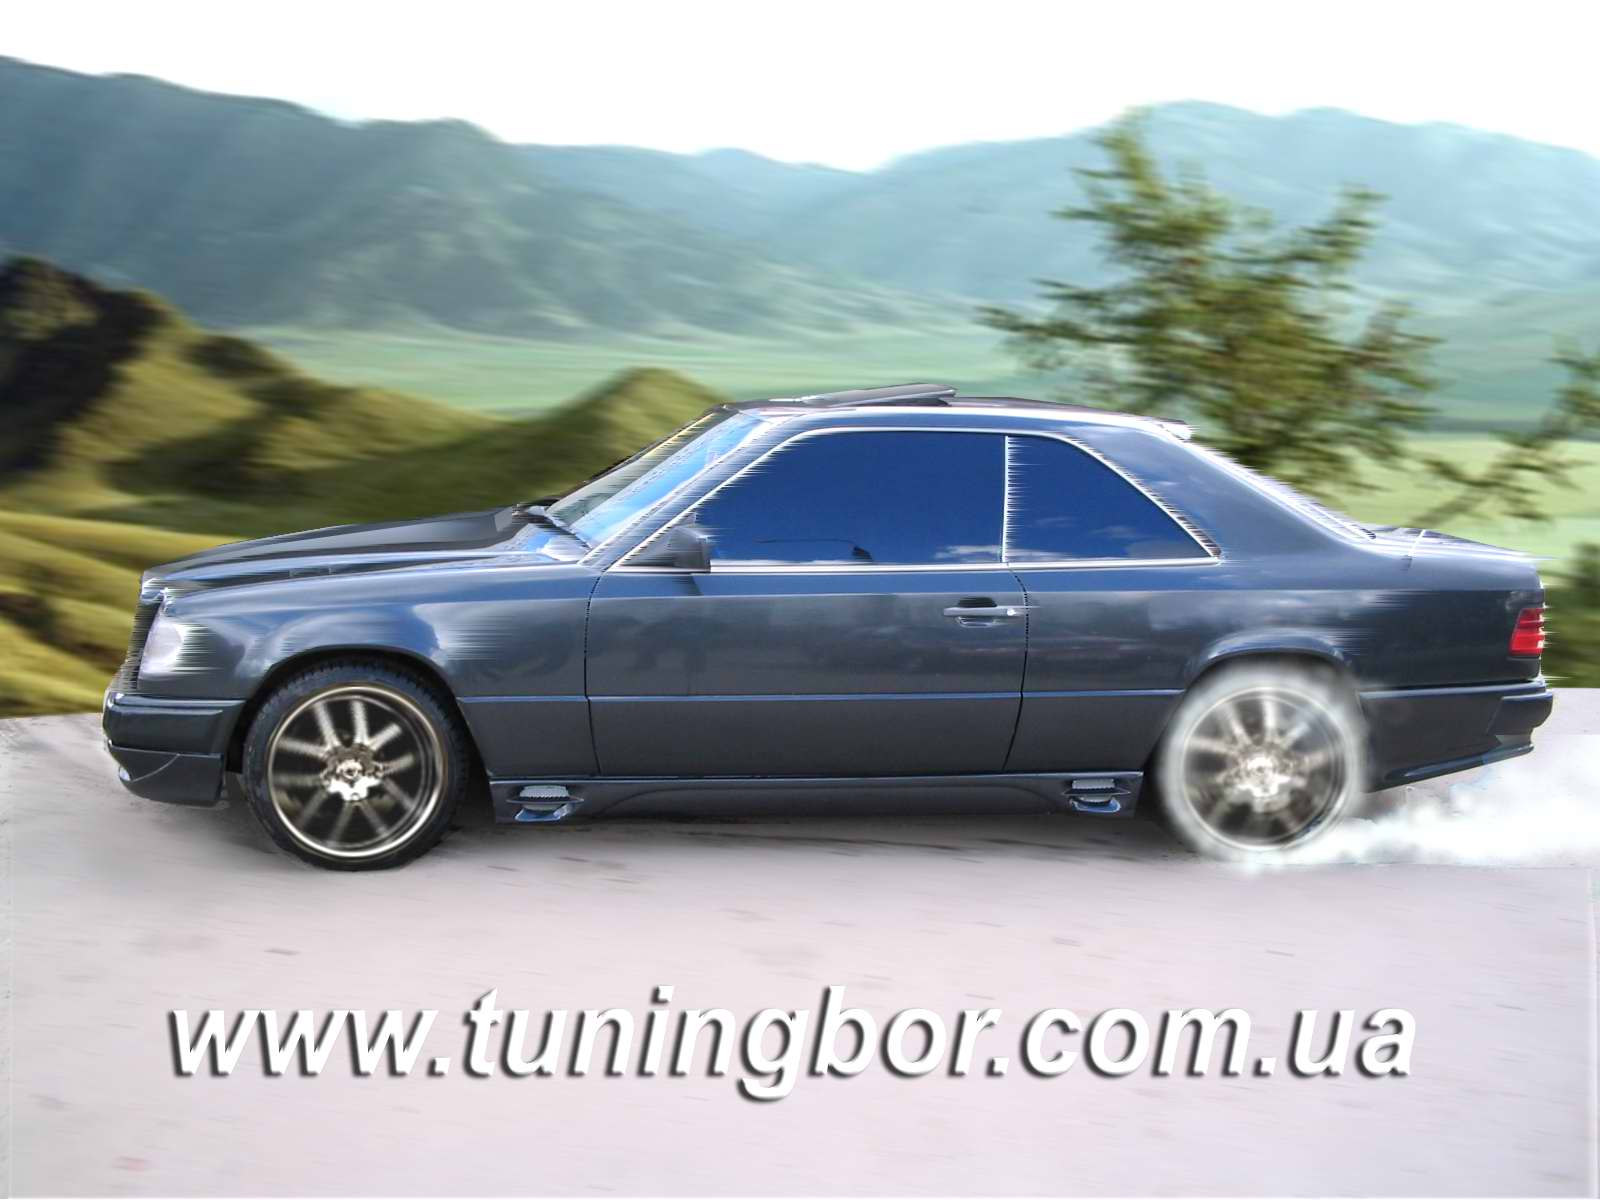 Mercedes benz w124 tuning blog best car review for Mercedes benz w124 tuning